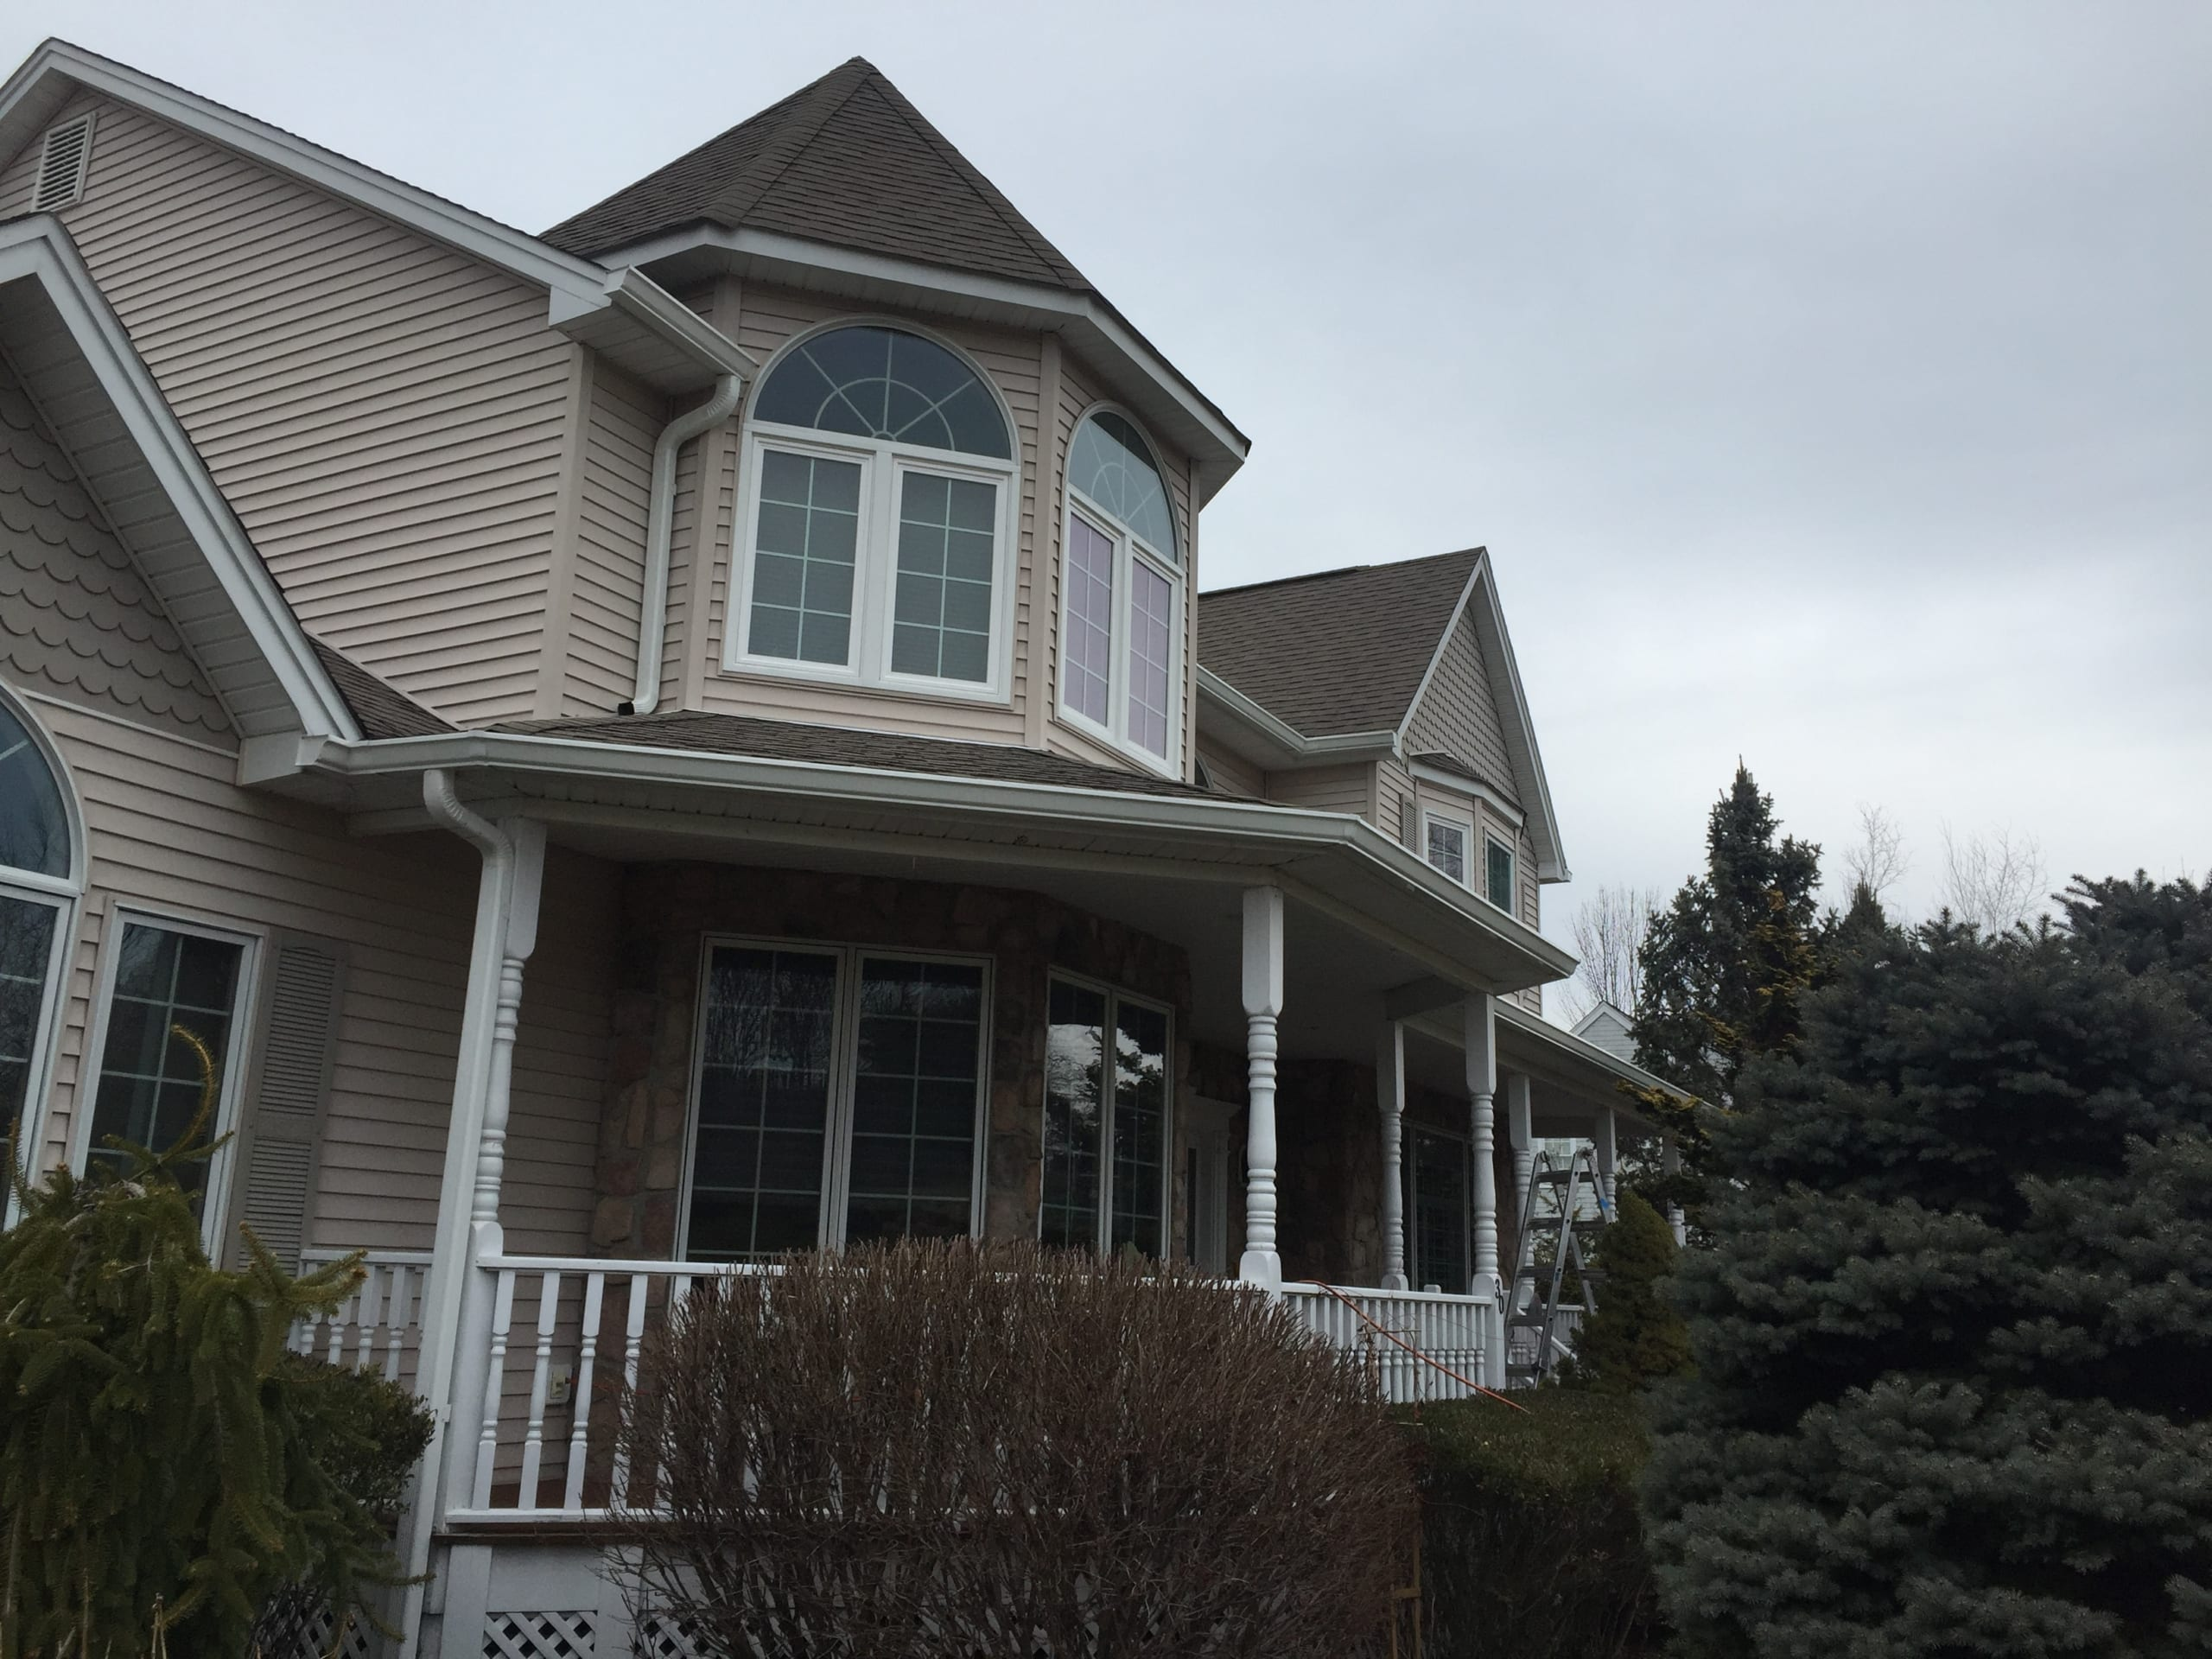 Gutter Installation in Tuxedo NY by Superior Seamless Gutters